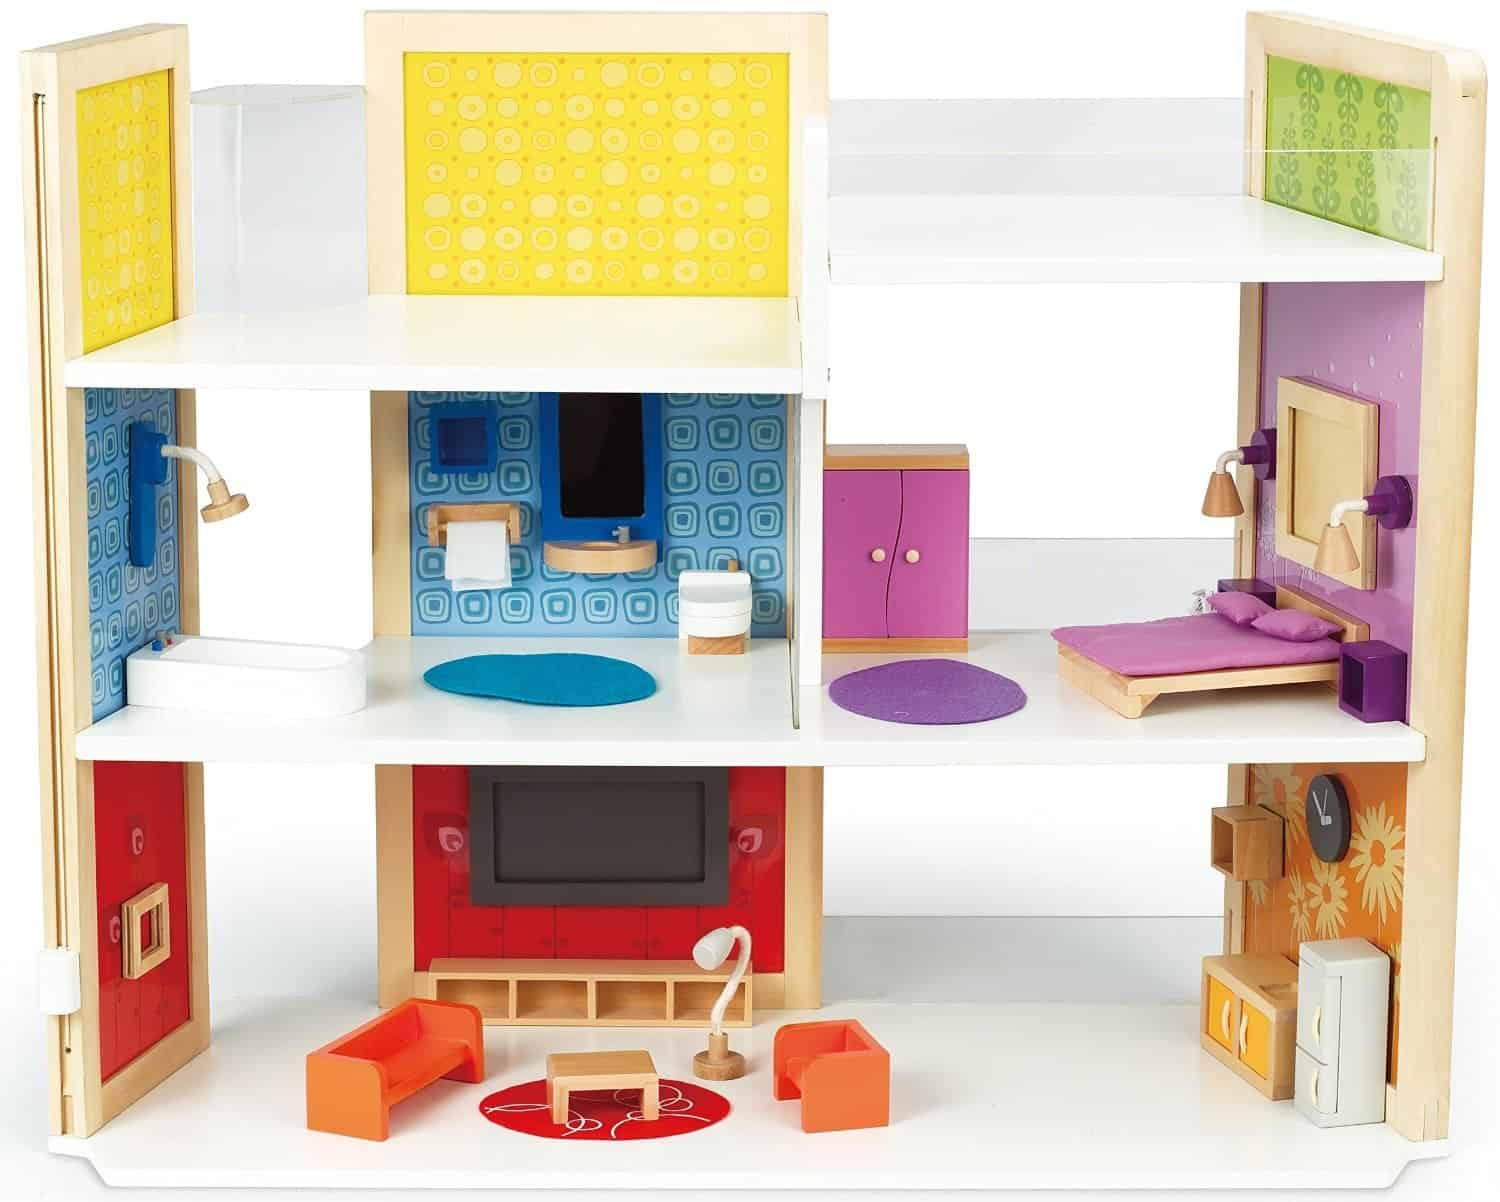 ultimate-gift-guide-best-birthday-and-holiday-gifts-and-toys-for-toddlers-2-3-years-old-hape-dollhouse